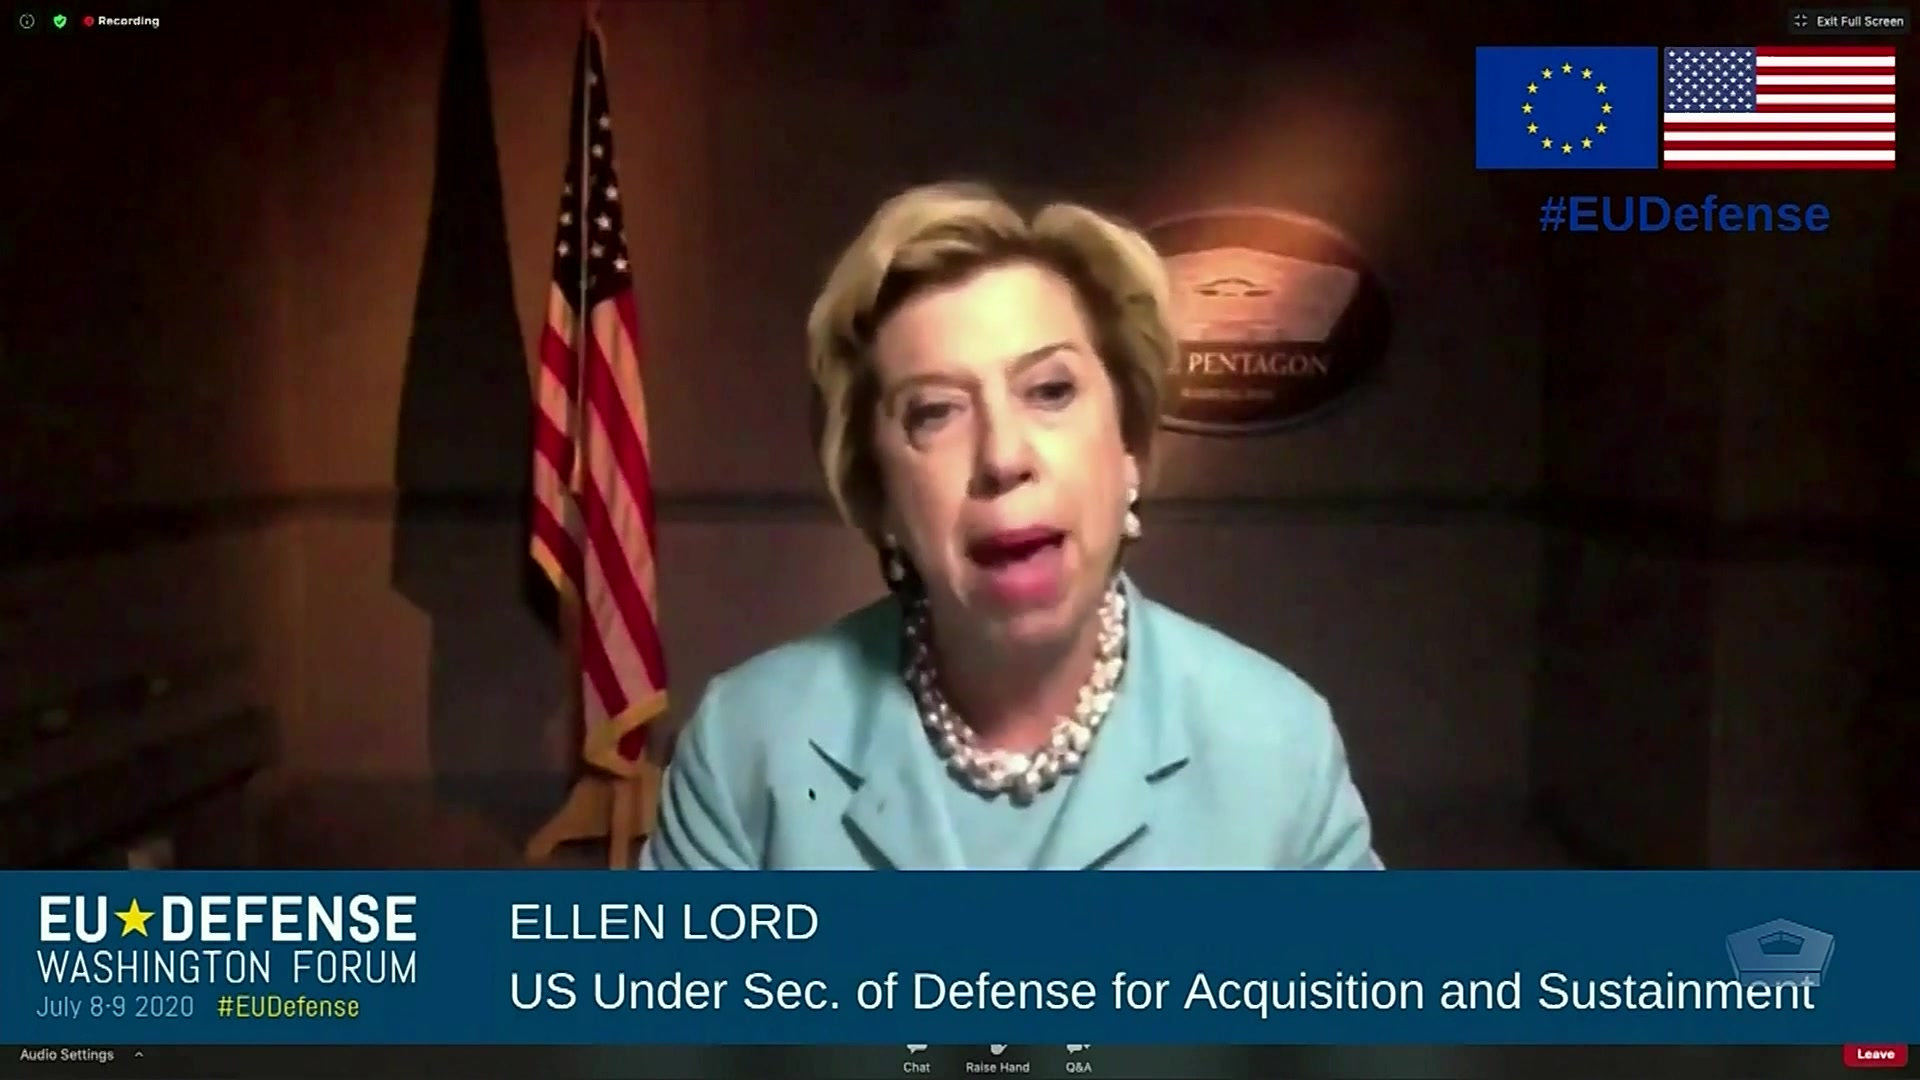 Ellen M. Lord, undersecretary of defense for acquisition and sustainment, discusses defense spending and capabilities after COVID-19 at the Brookings Institution's virtual European Union Defense Washington Forum, July 8, 2020.